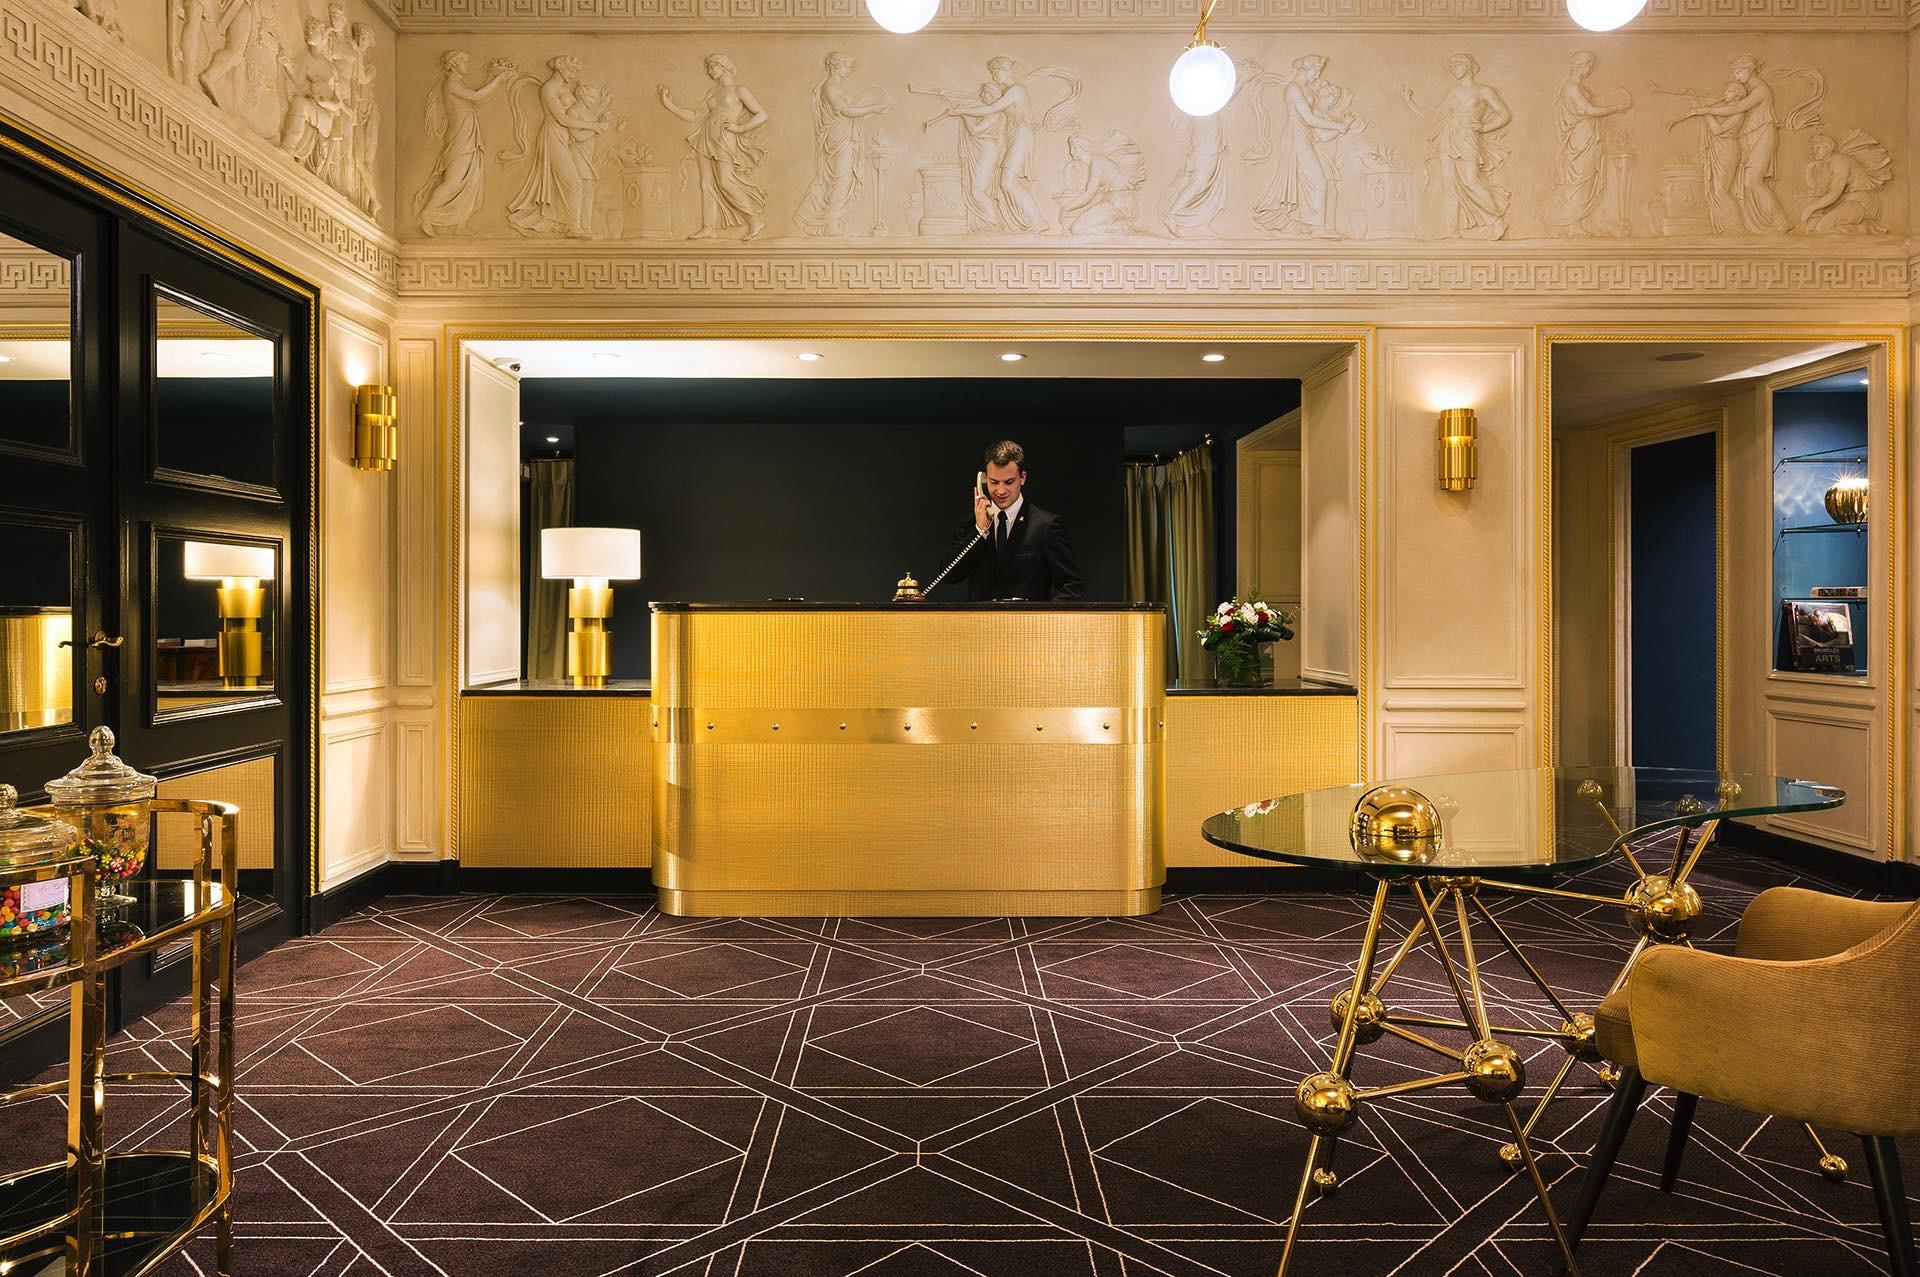 Hotel Barsey by Warwick Lobby Reception